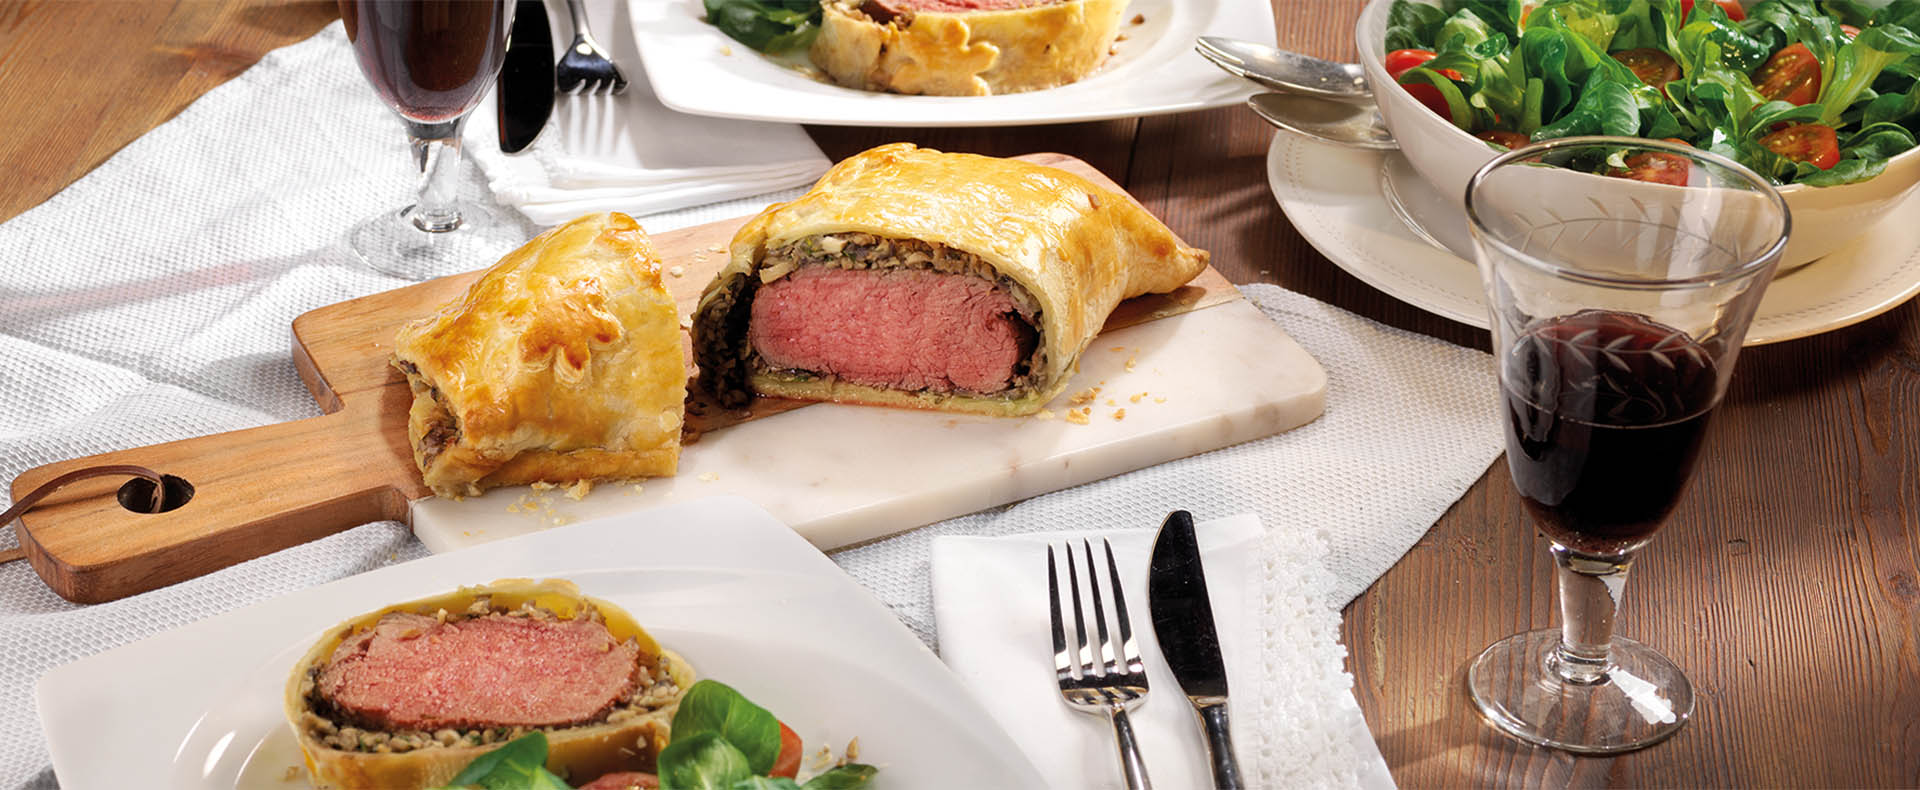 Rezept Filet Wellington Tante Fanny